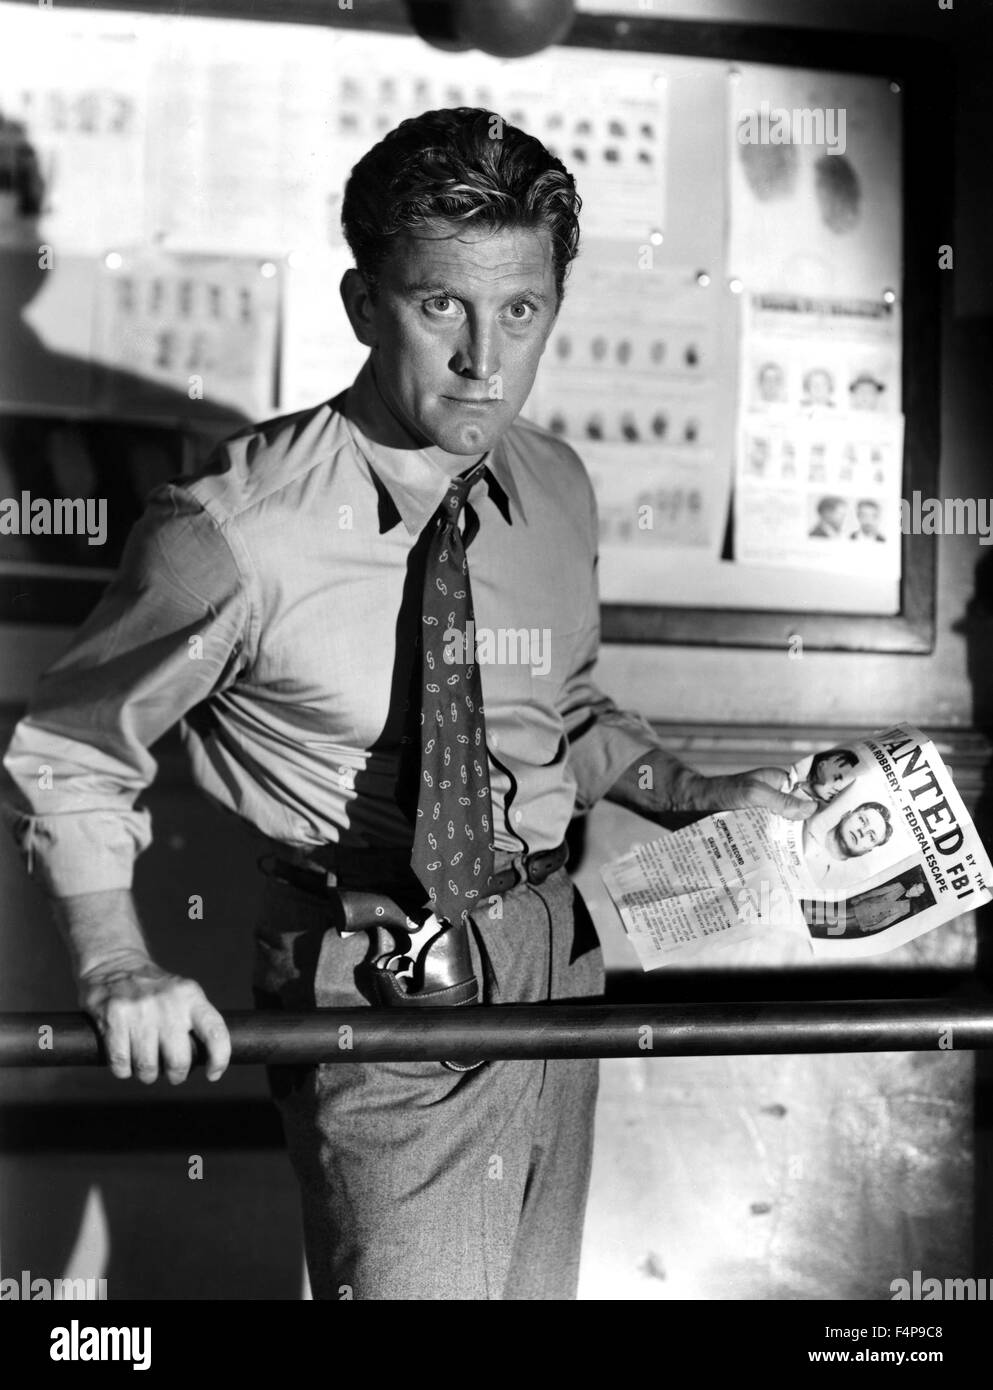 Kirk Douglas / Detective Story 1951 directed by William Wyler - Stock Image